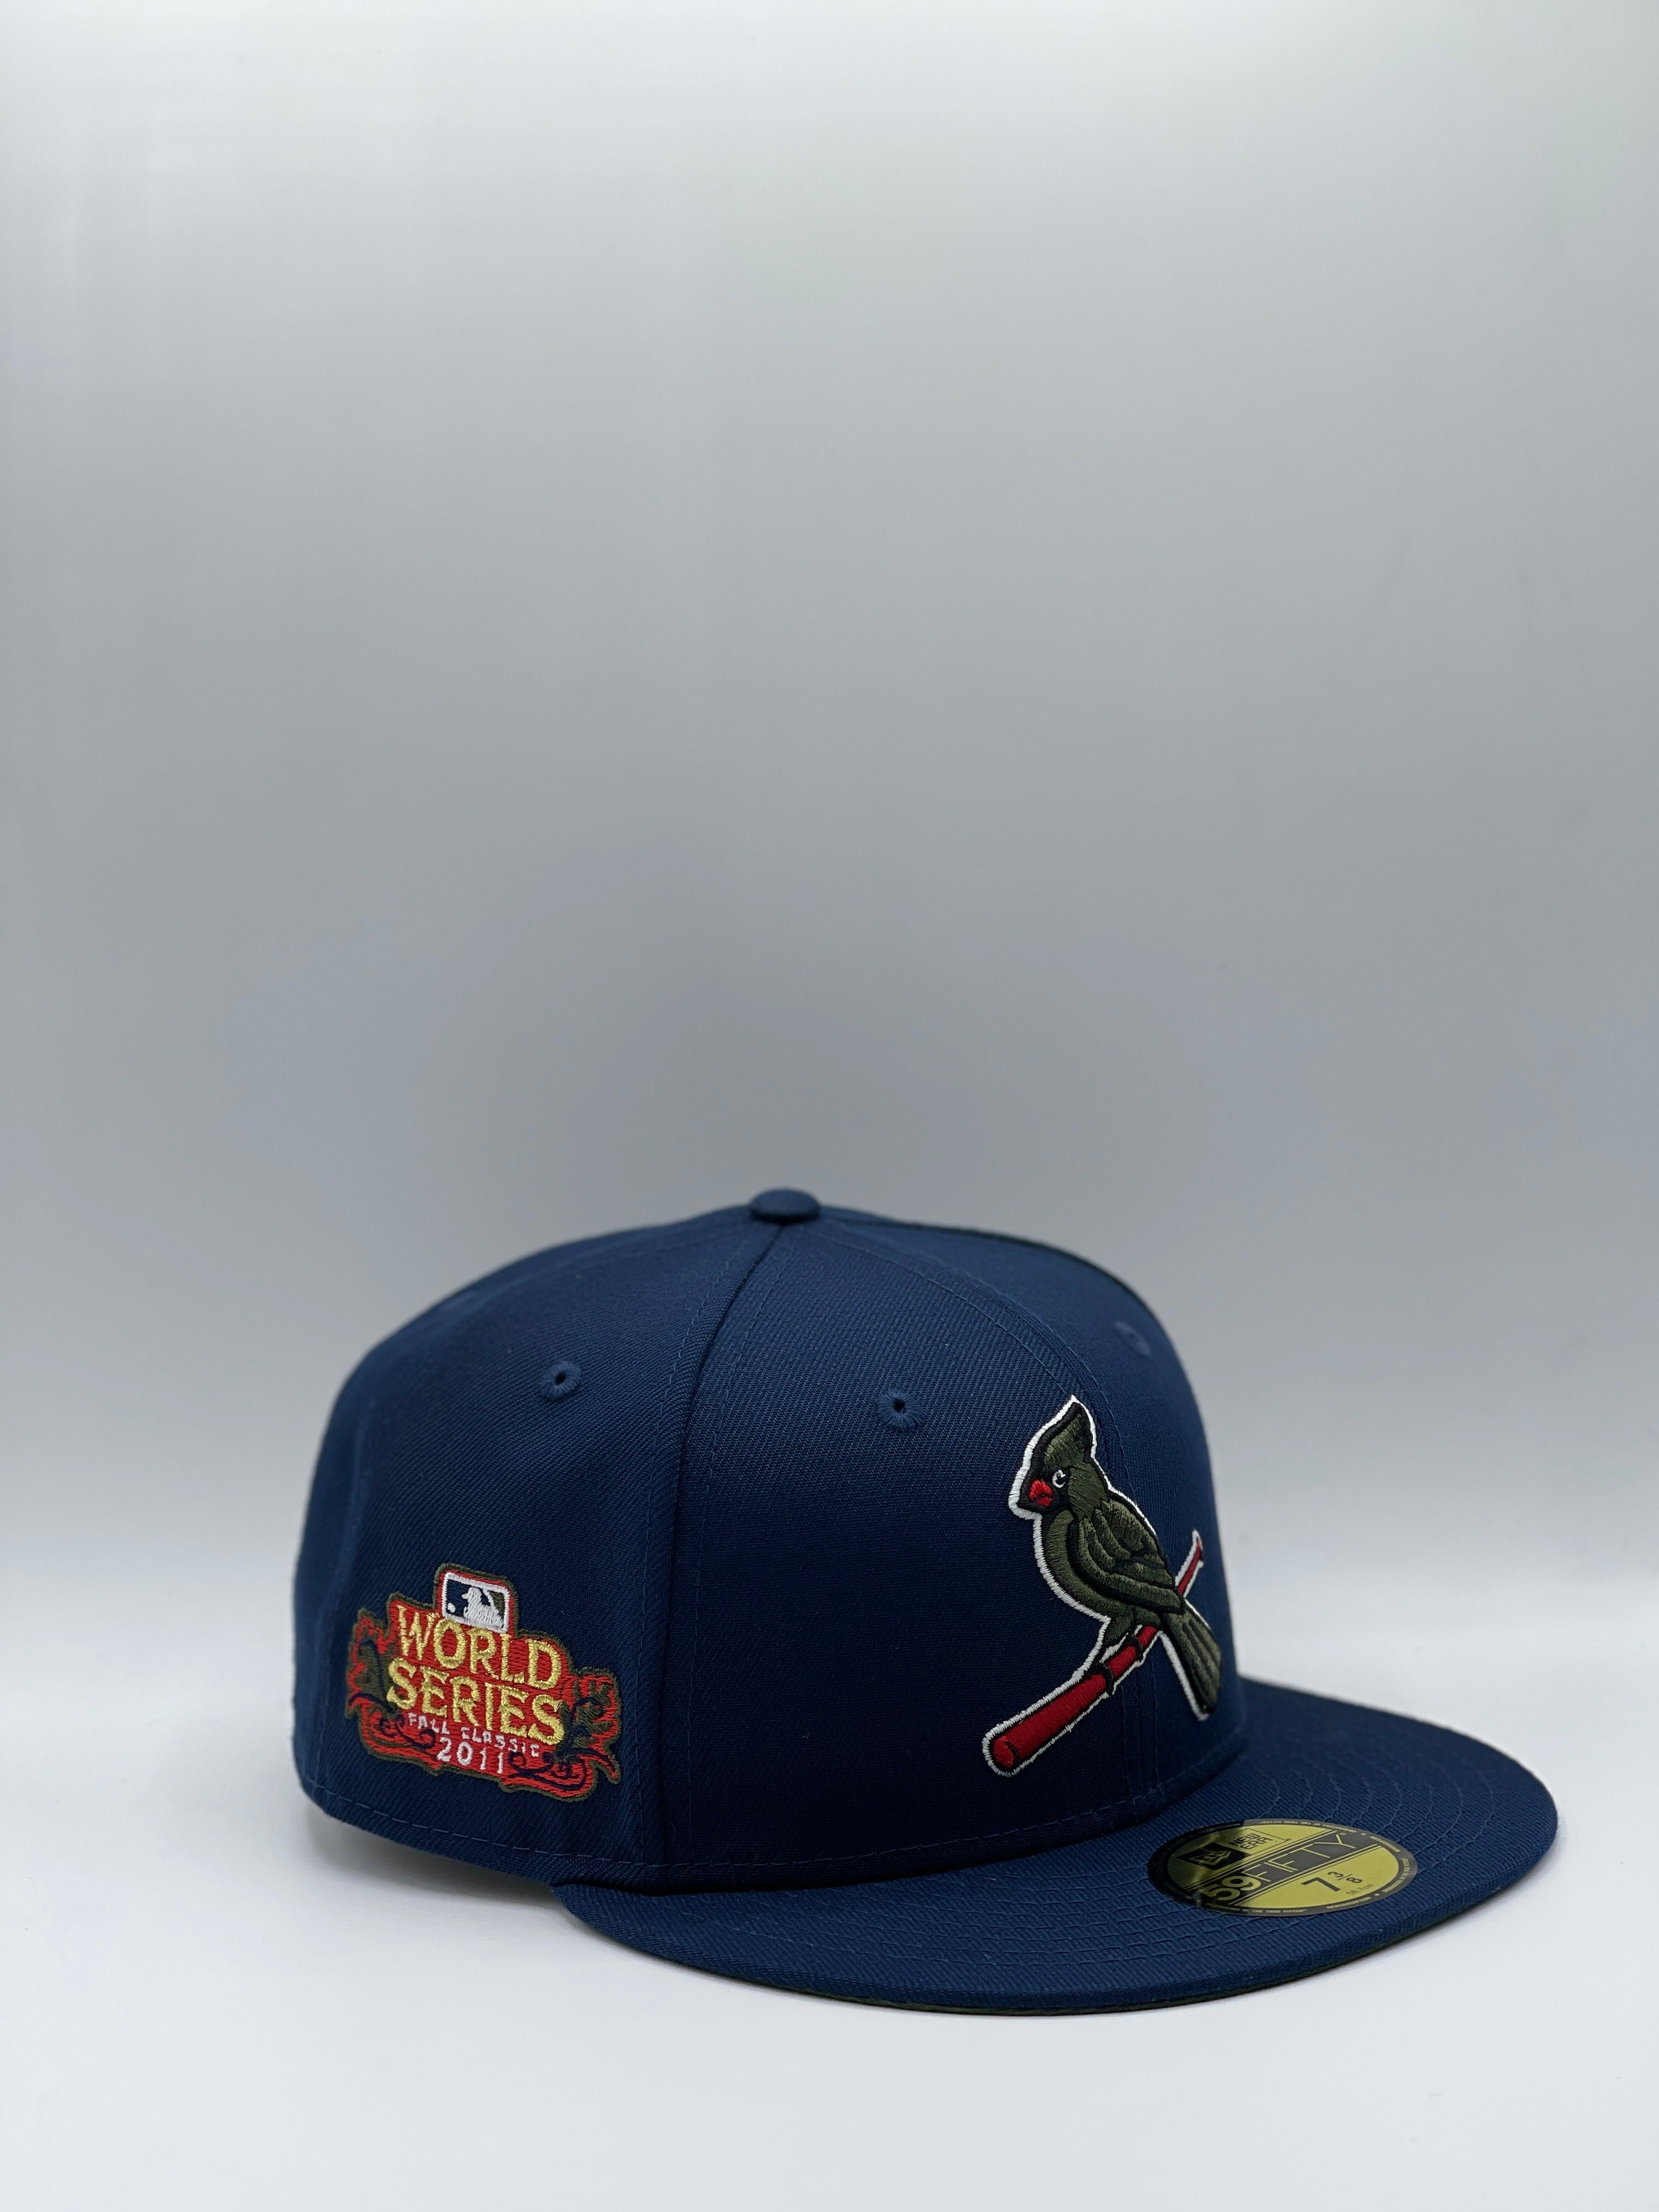 ST. LOUIS CARDINALS x 2011 WS NEW ERA 59FIFTY (OLIVE UV)